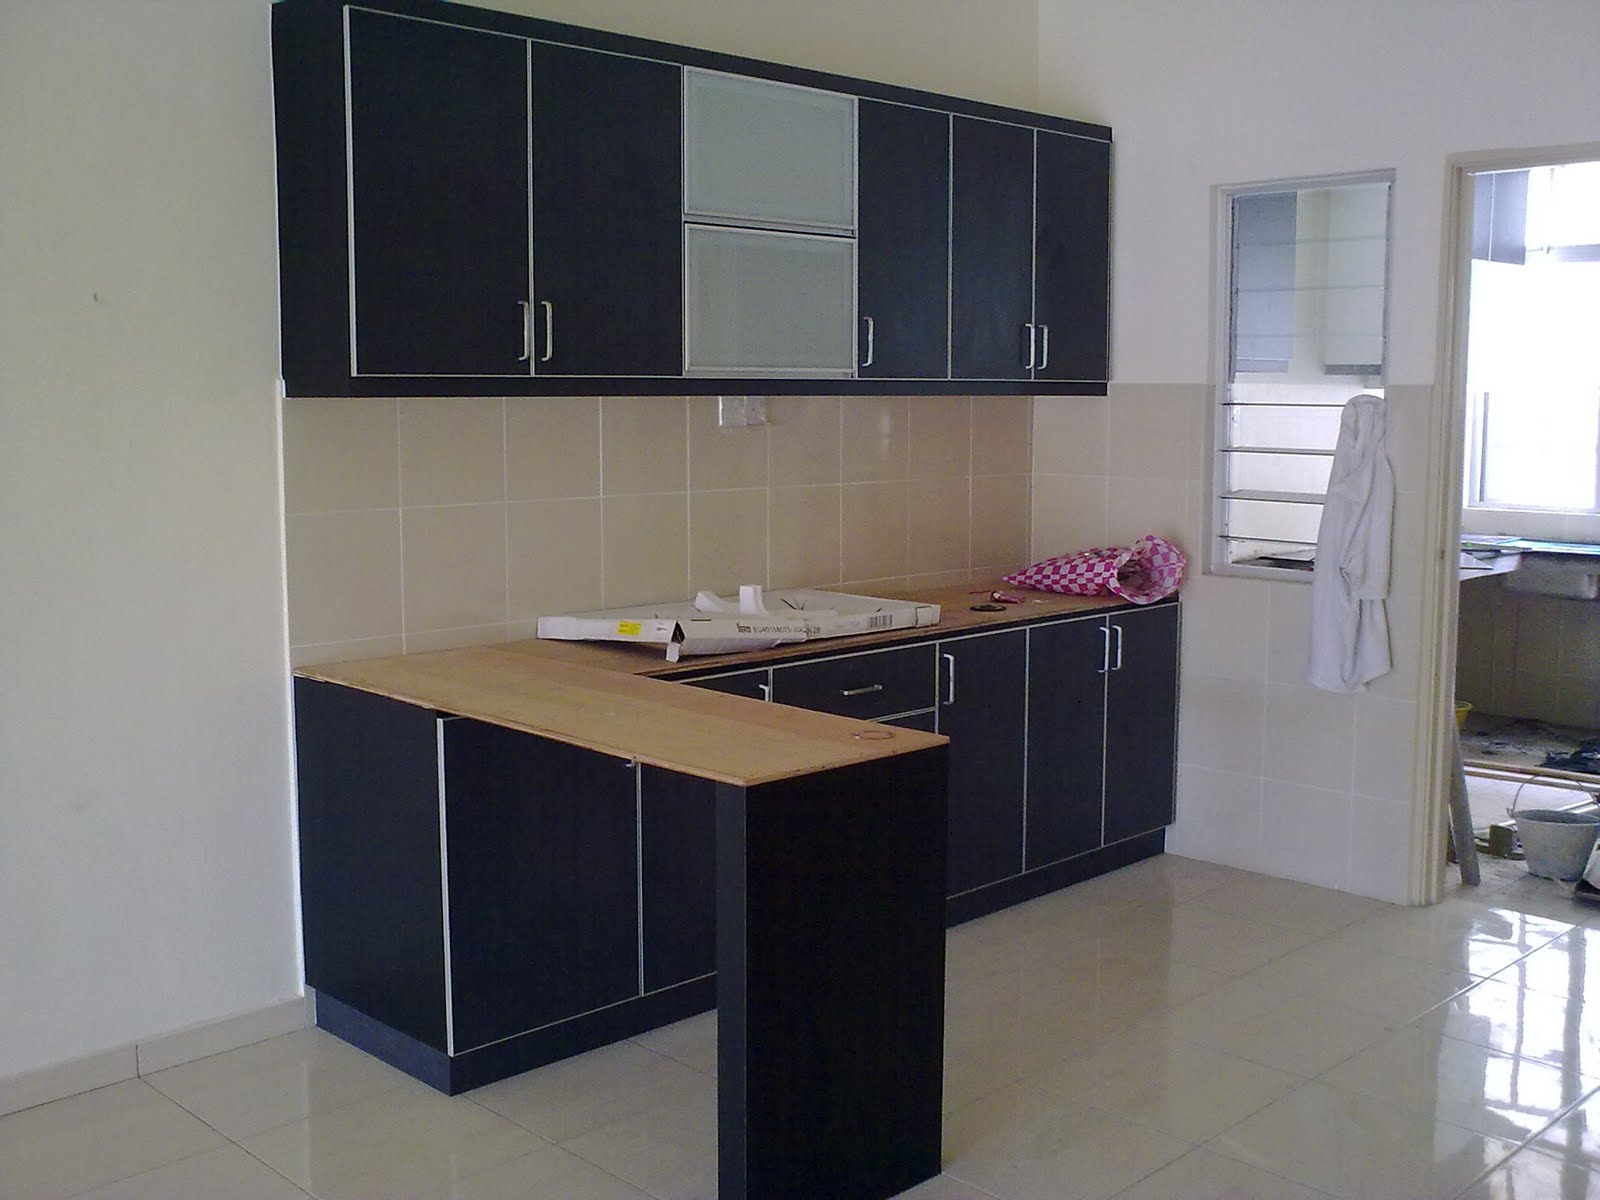 dapur wardrobe dll click image to enlarge related post kabinet dapur